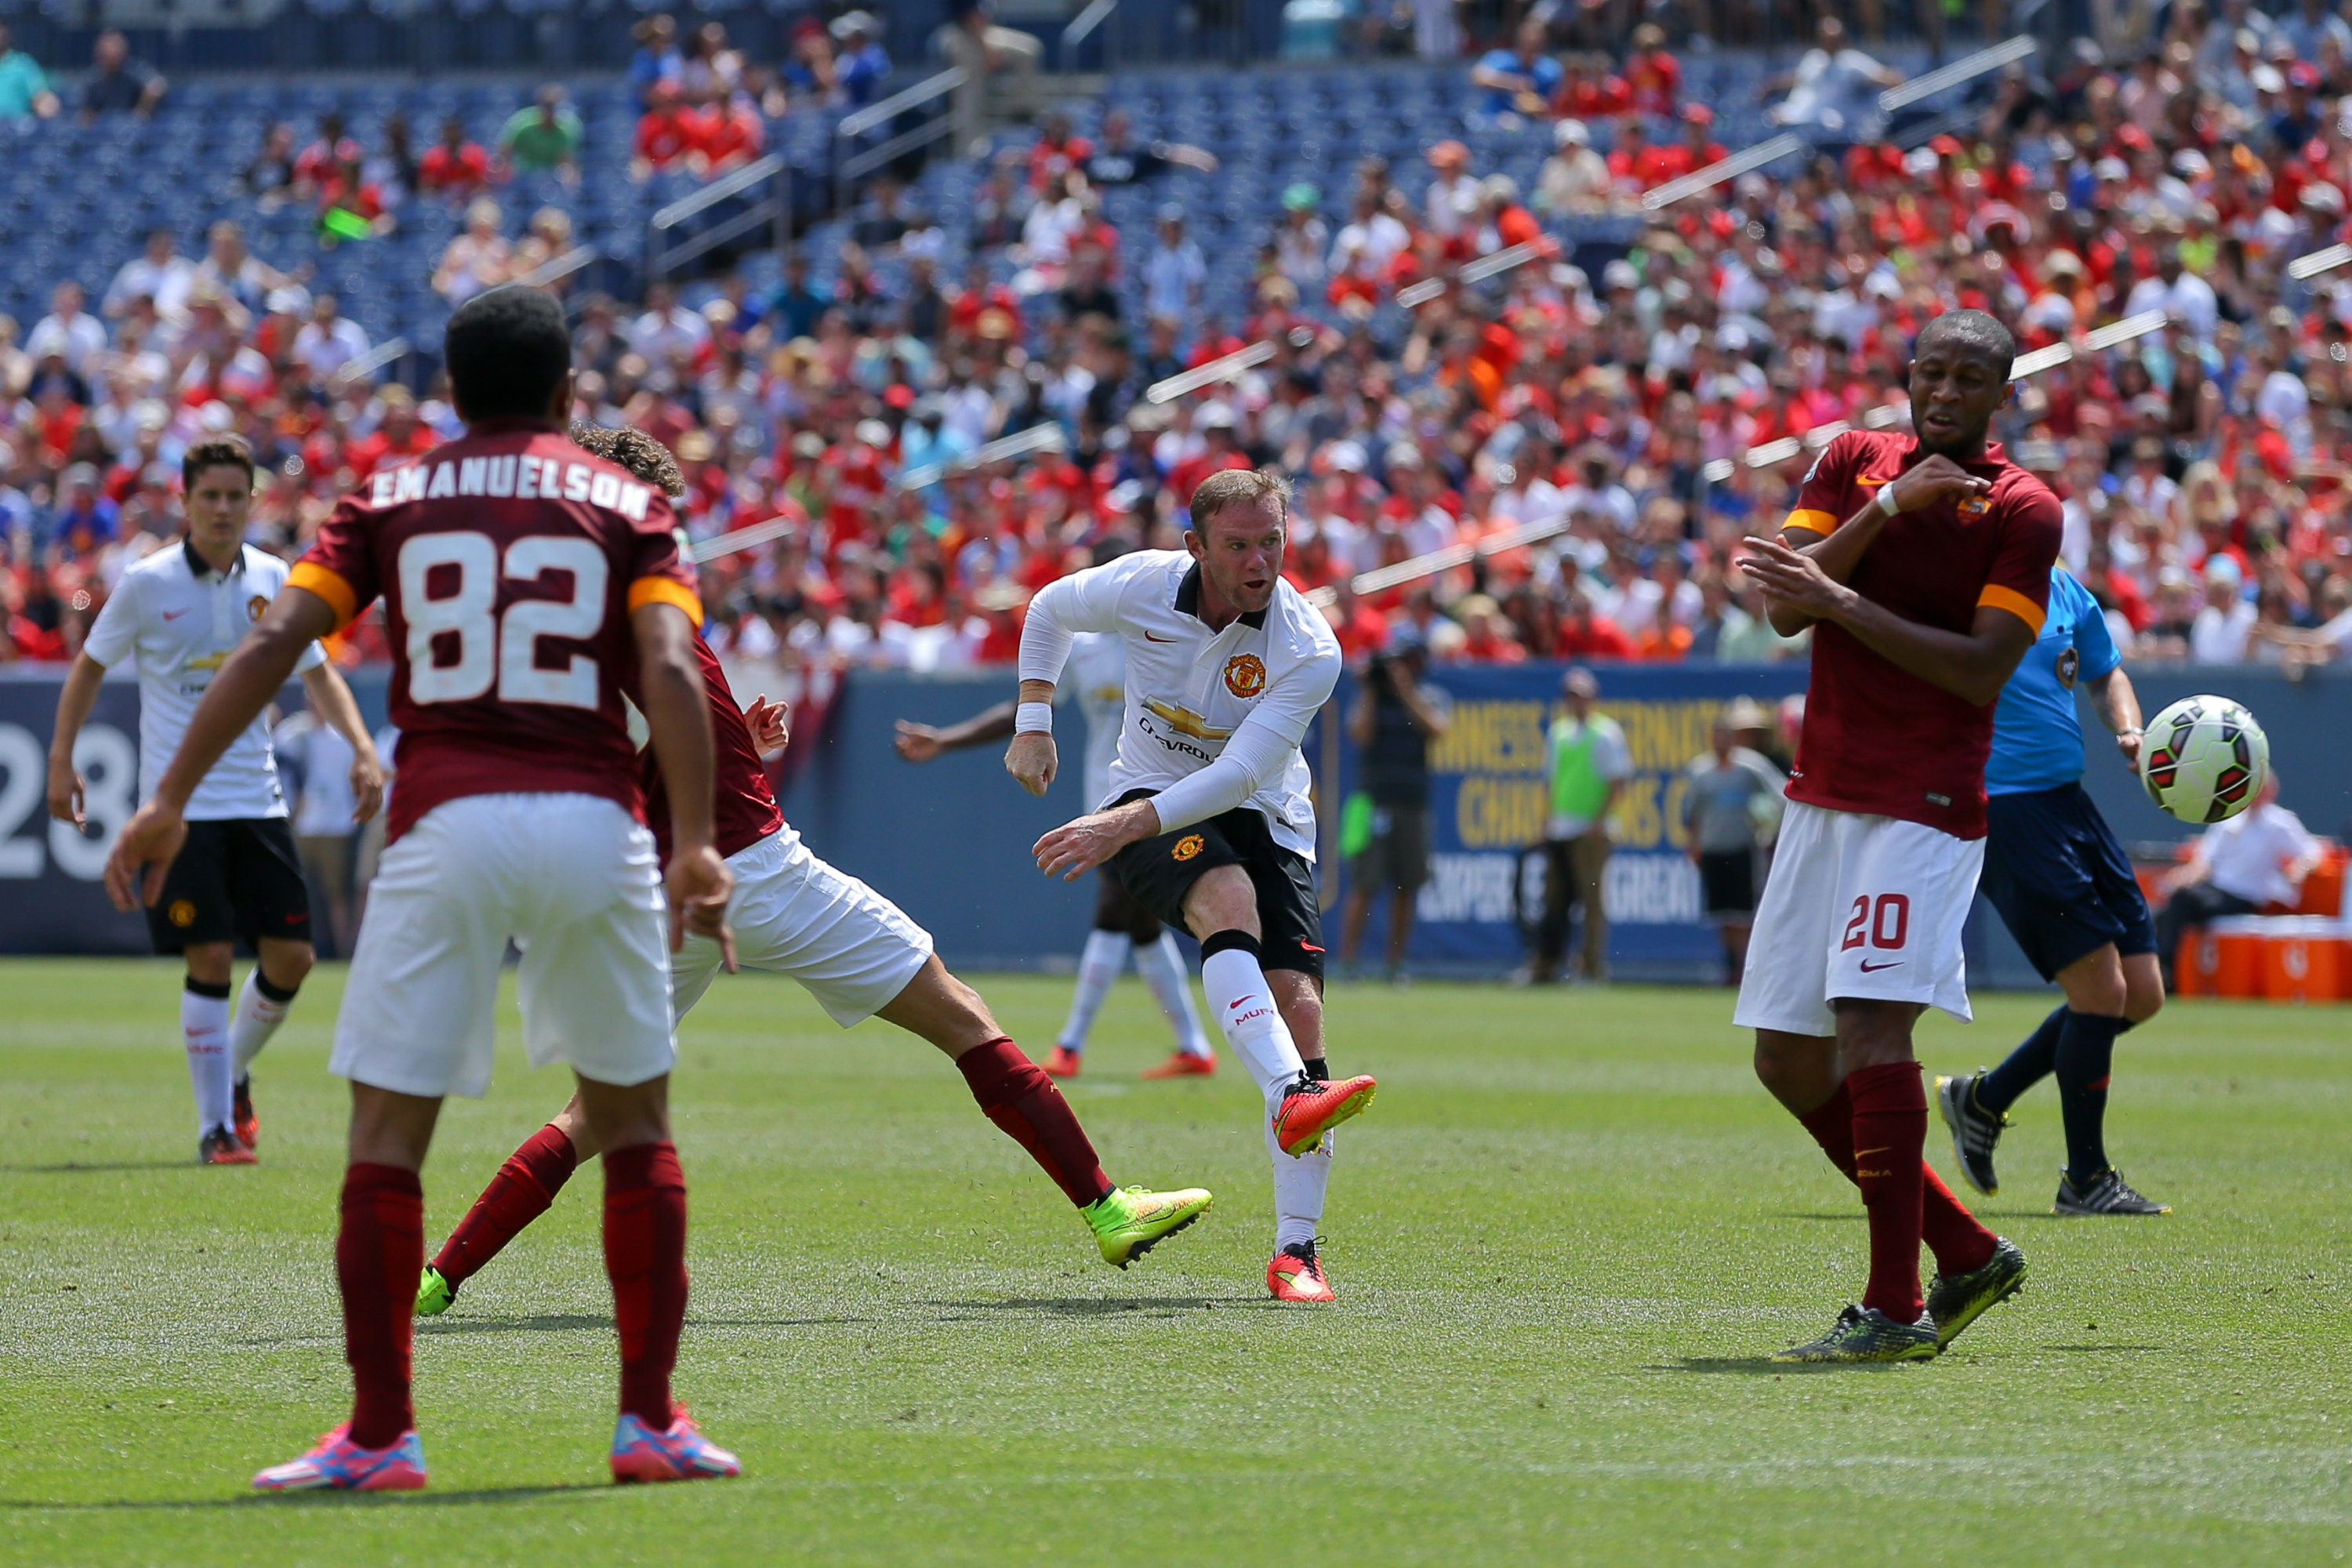 International Champions Cup 2014 - AS Roma v Manchester United